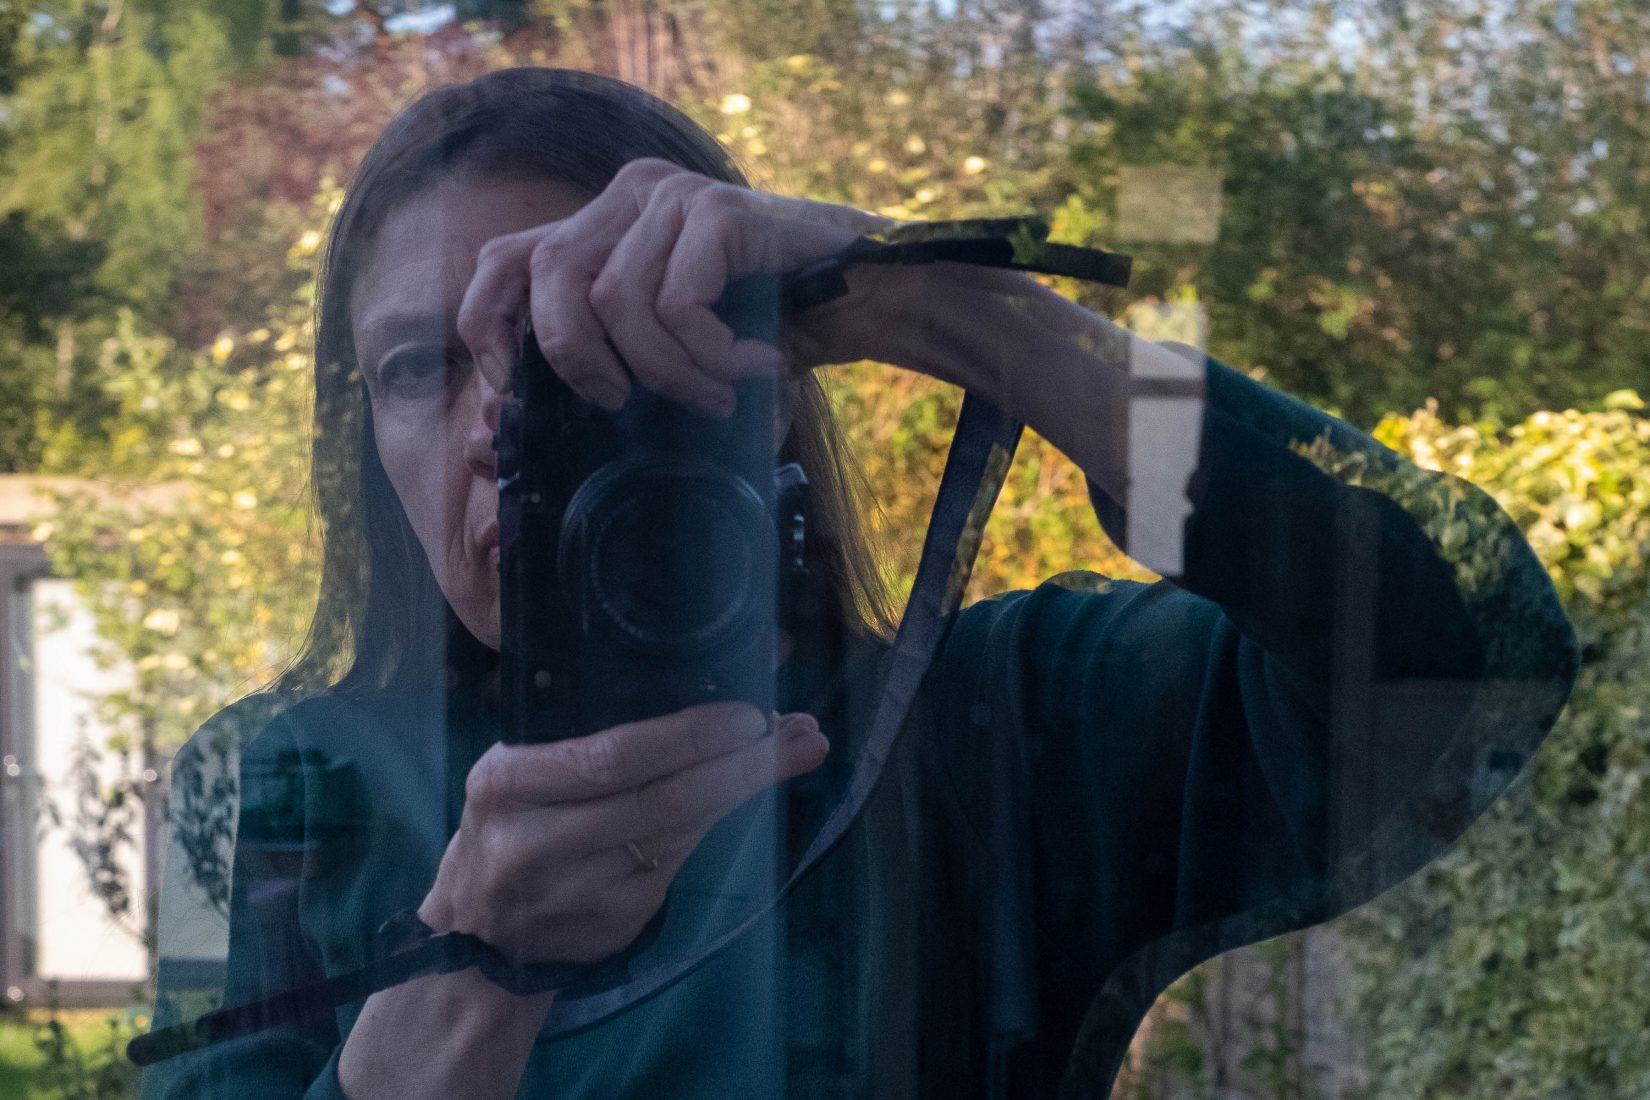 Reflection in a window of a woman holding a camera, obscuring half her face. Behind her is a brightly lit garden.